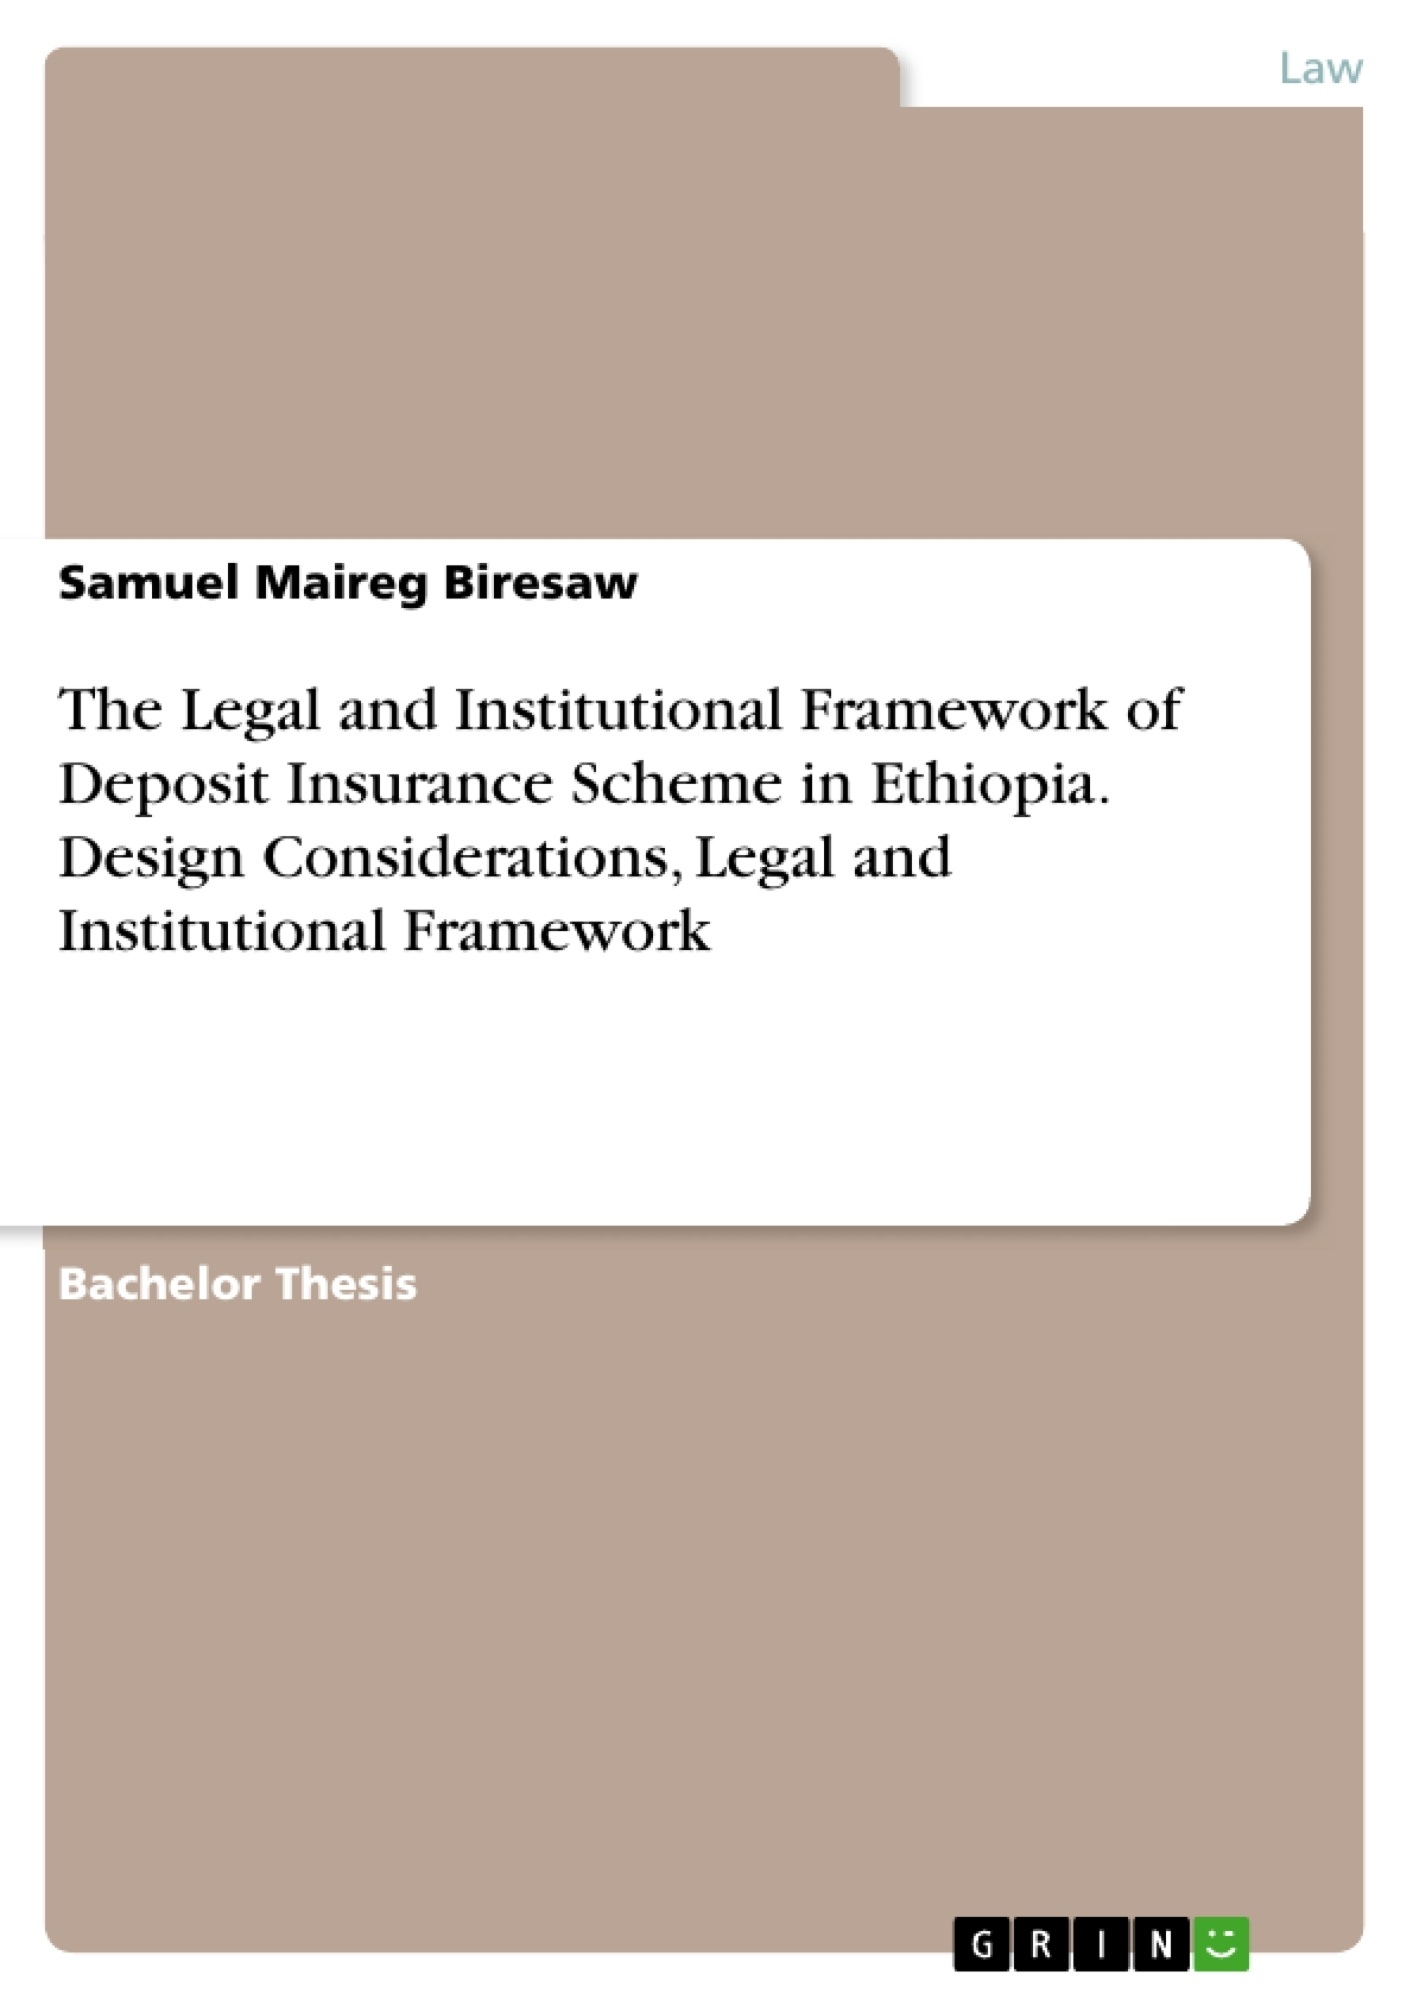 GRIN - The Legal and Institutional Framework of Deposit Insurance Scheme in  Ethiopia  Design Considerations, Legal and Institutional Framework